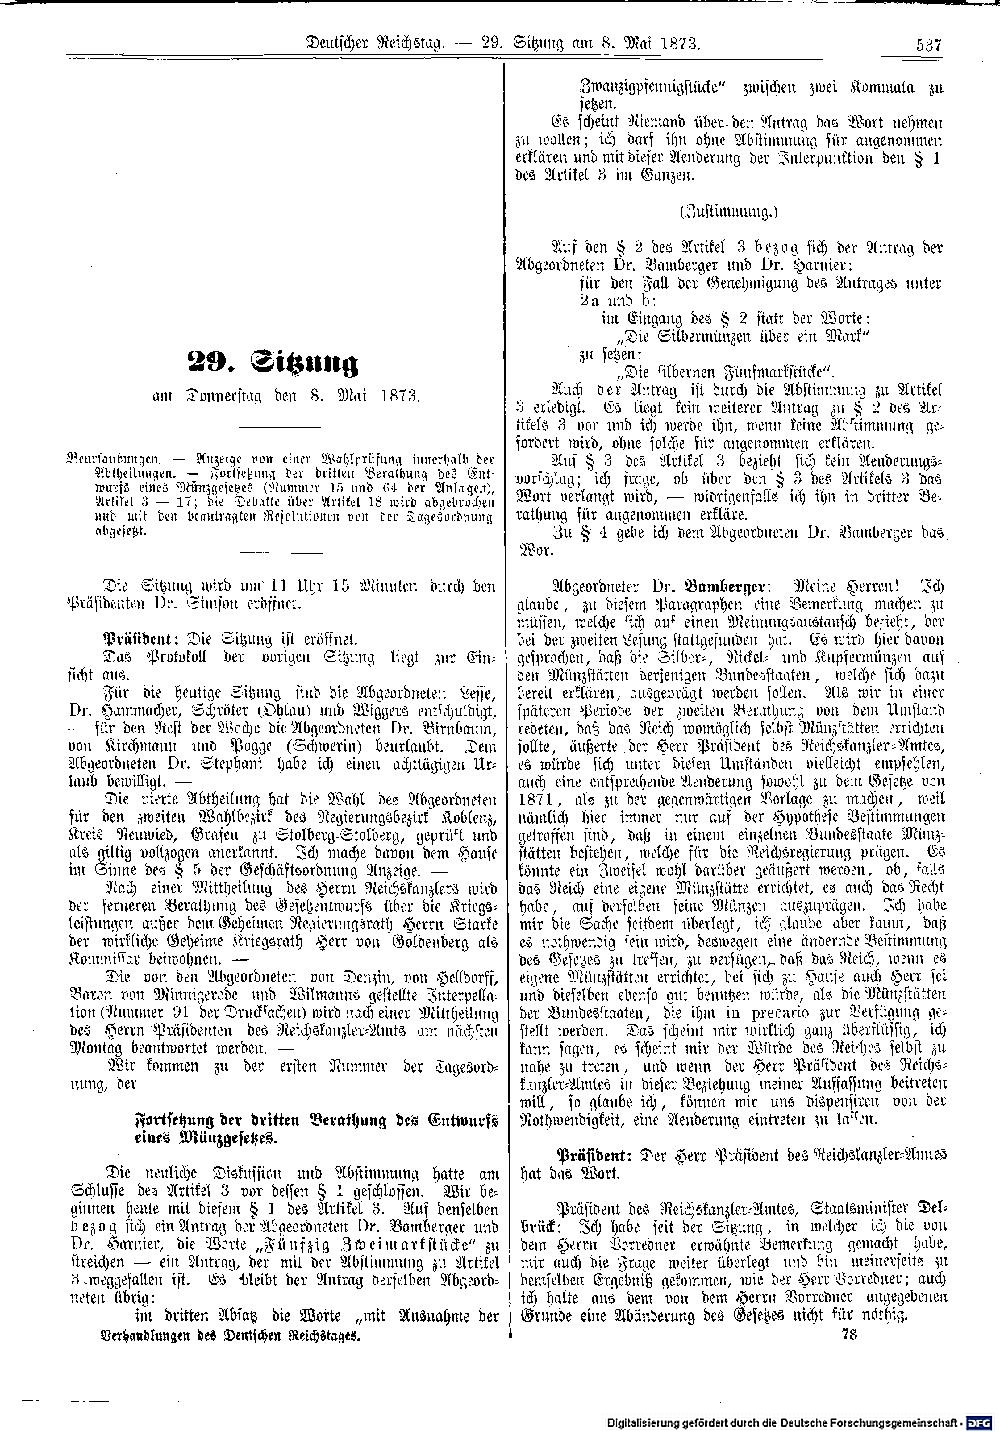 Scan of page 537